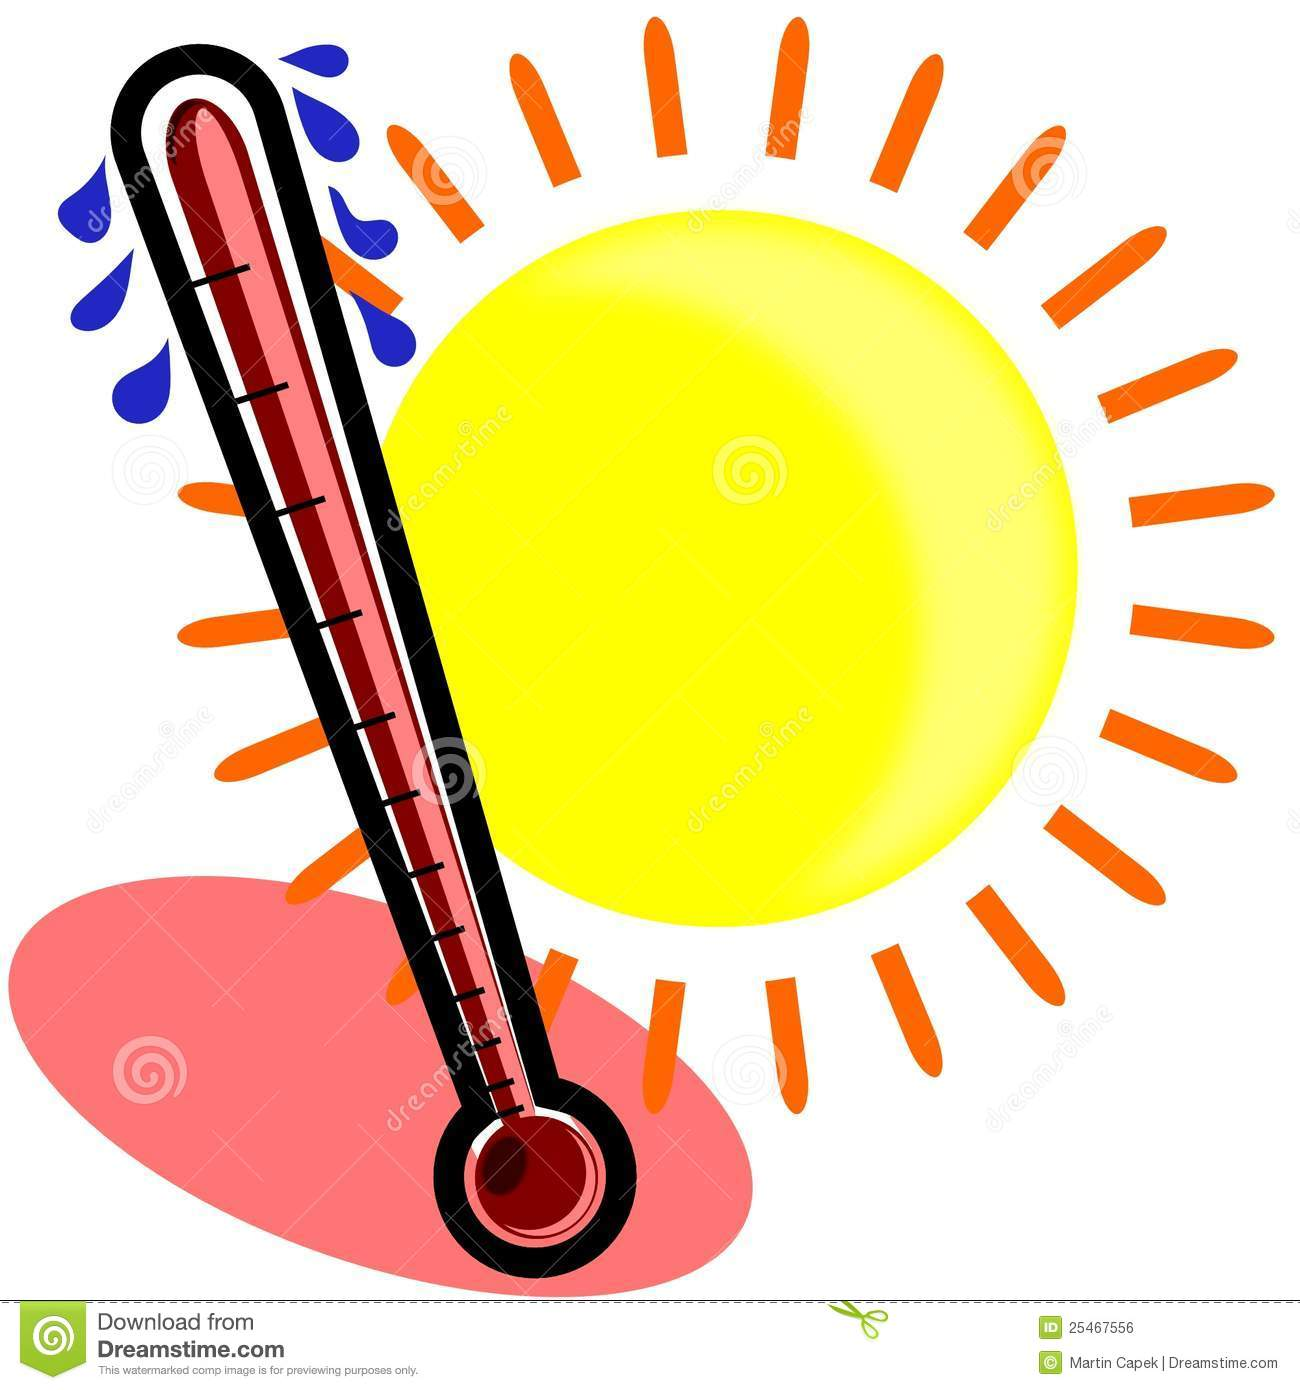 Clipart thermometer hot.